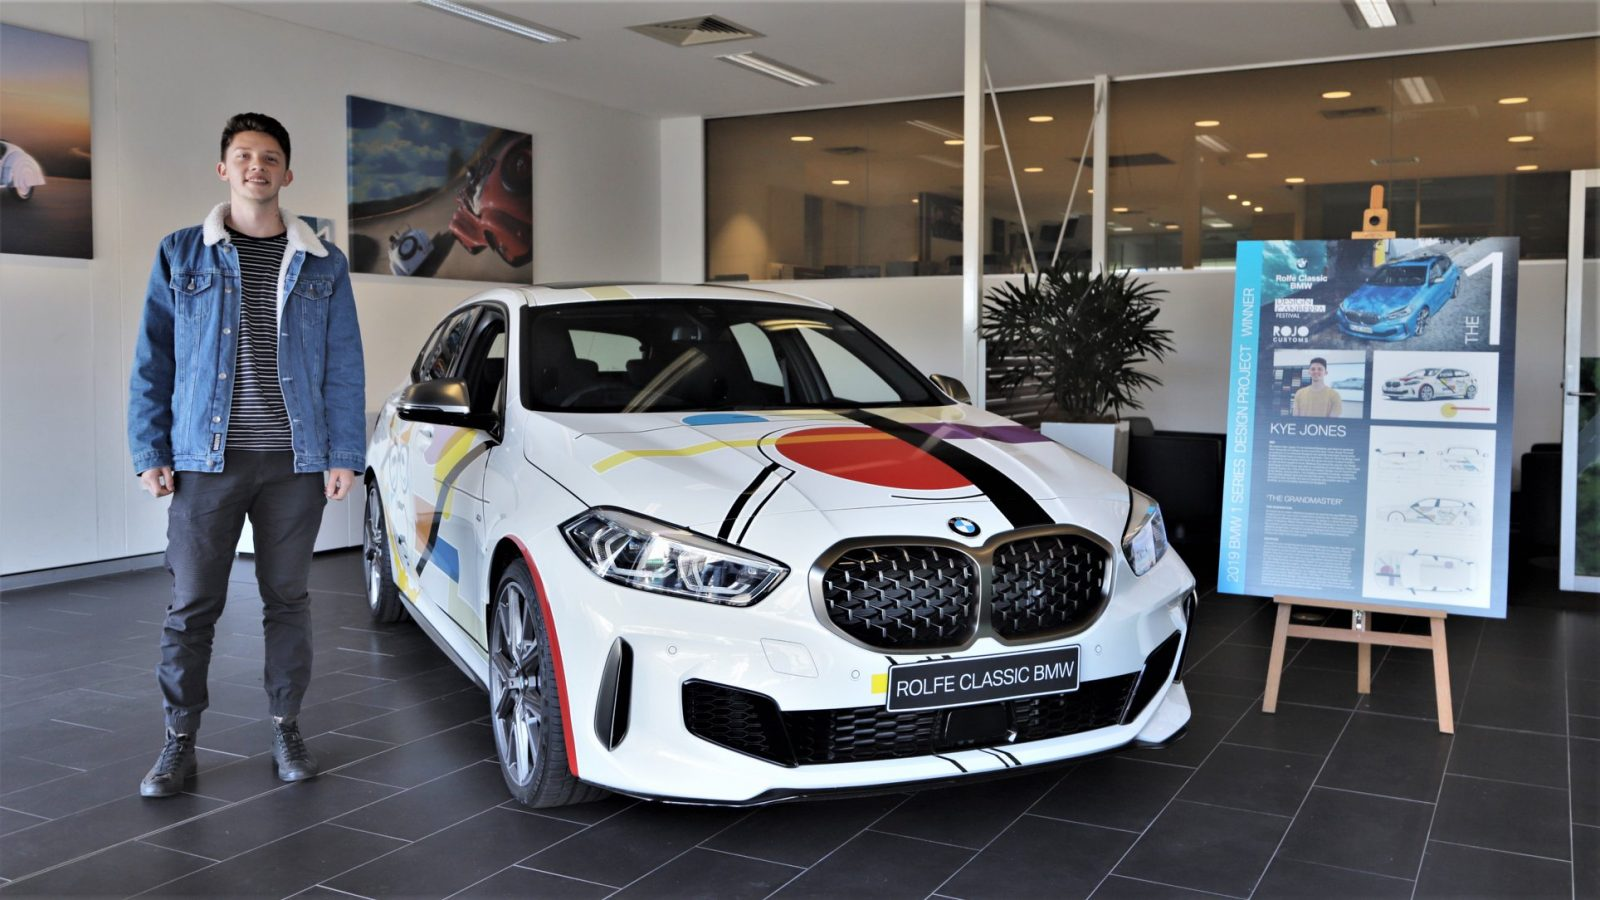 Congratulations Kye – BMW Car Wrap competition winner